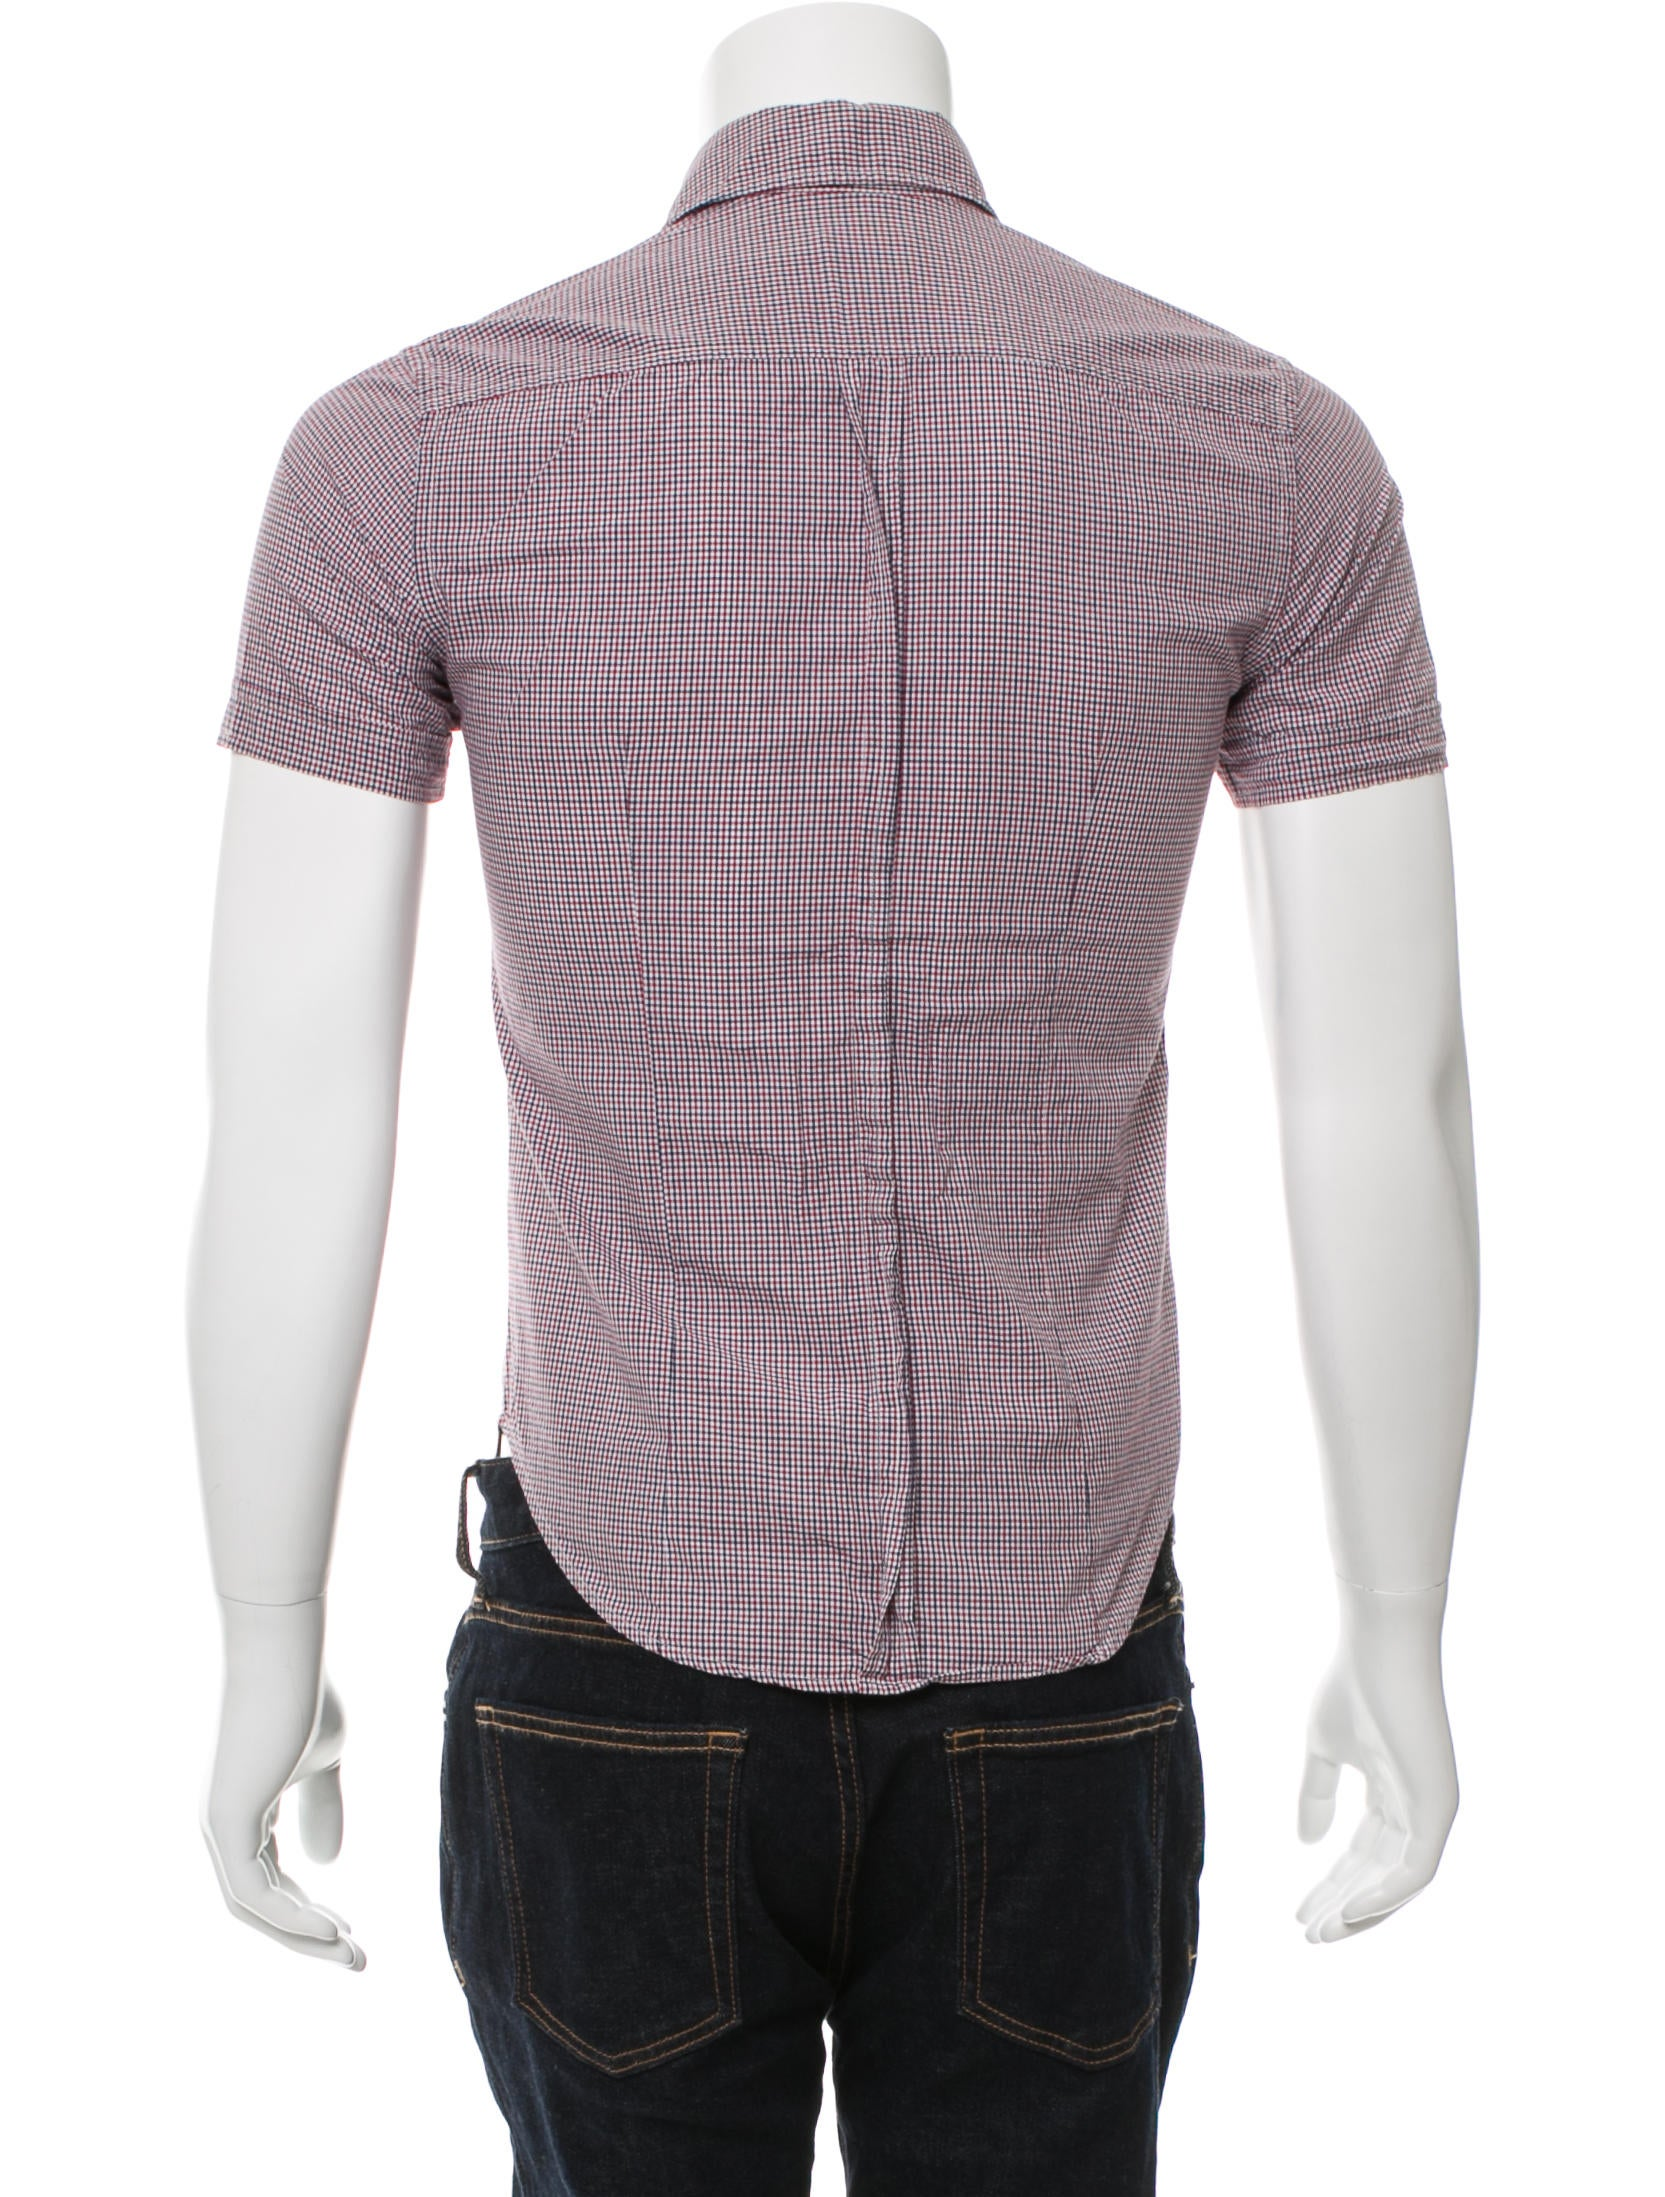 Band of outsiders plaid short sleeve shirt clothing Short sleeve plaid shirts